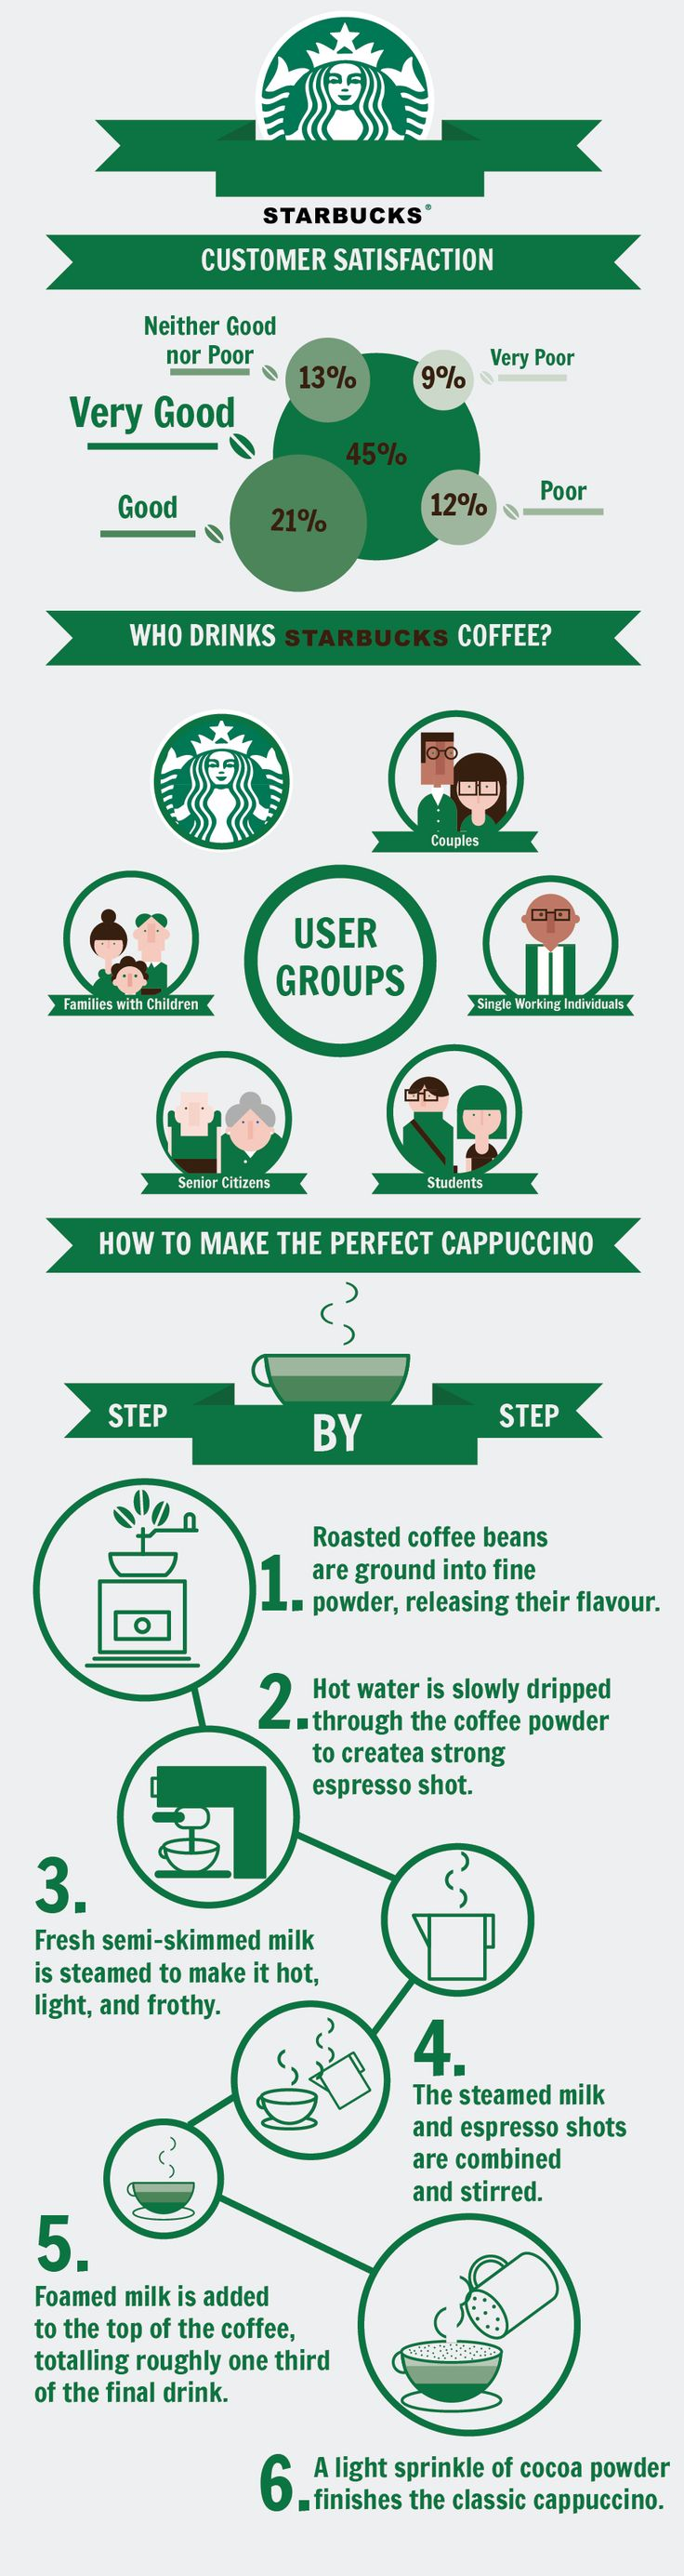 40 best coffee project images on Pinterest | Coffee time, Backyard ...